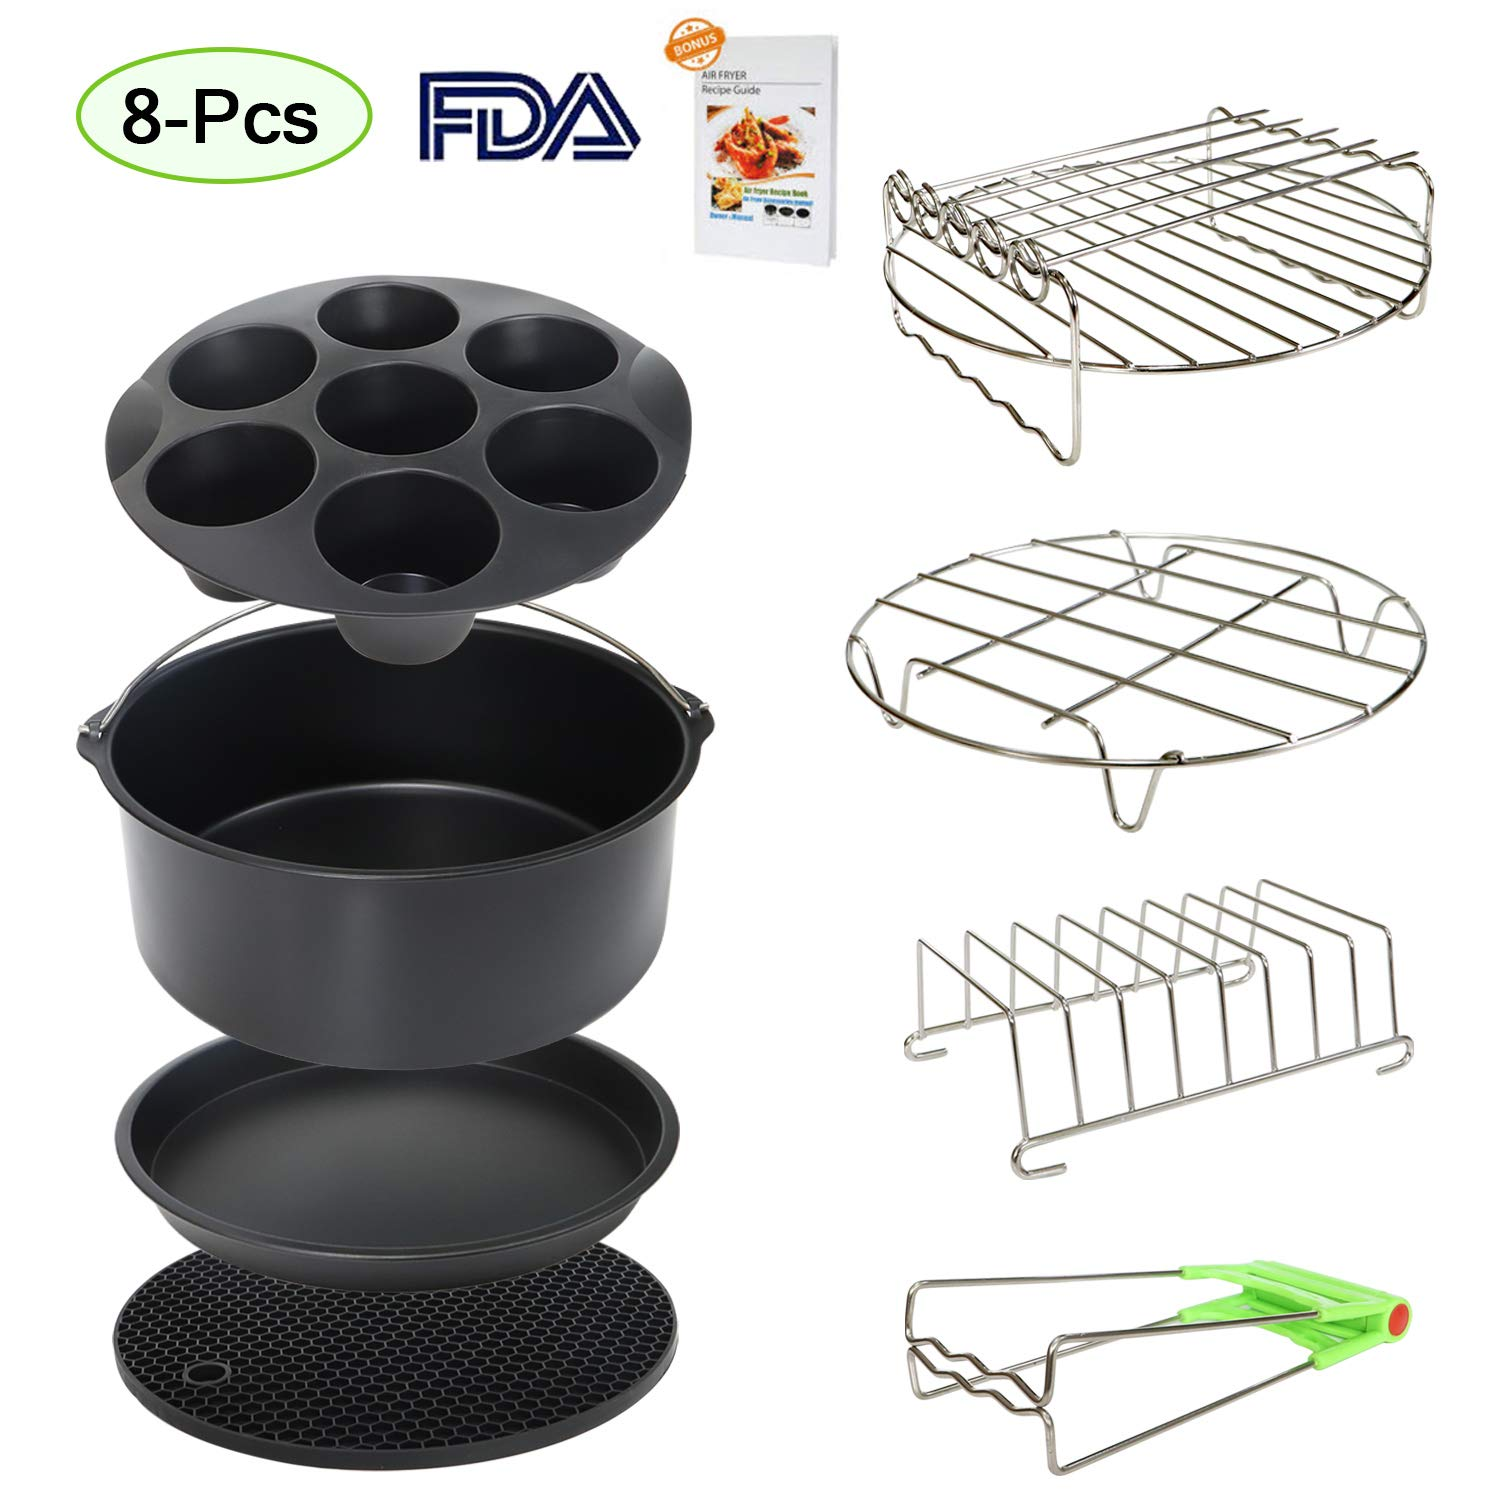 9 Inch XL Air Fryer Accessories 8Pcs Compatible with Phillips 965X Cozyna and Secura etc,Fit Most 5.3QT - 6.8QT Air Fryer